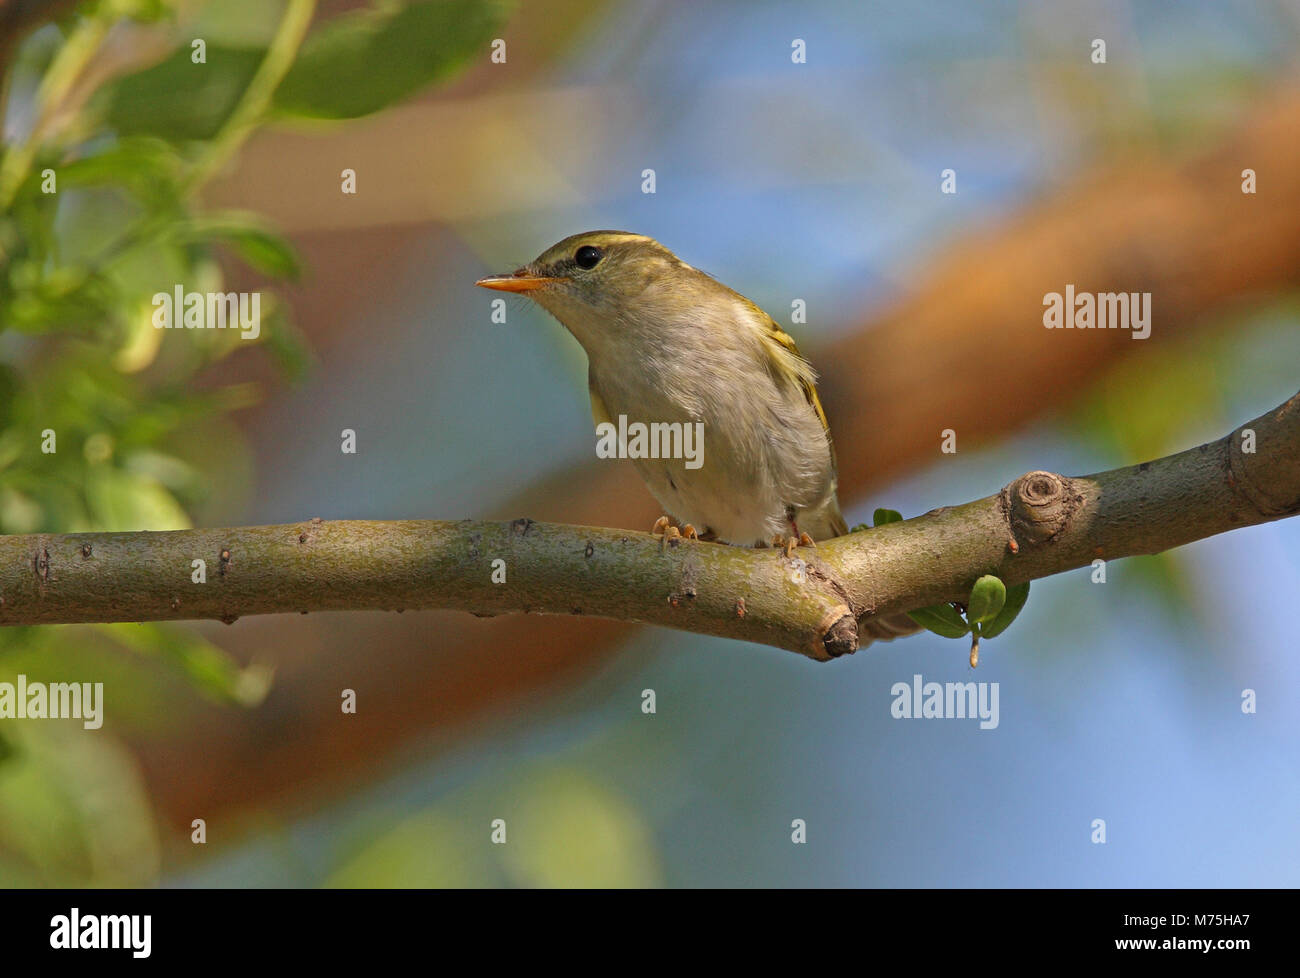 Claudia' Leaf-warbler (Phylloscopus daudiae) adult perched on branch  Bejing, China             May Stock Photo